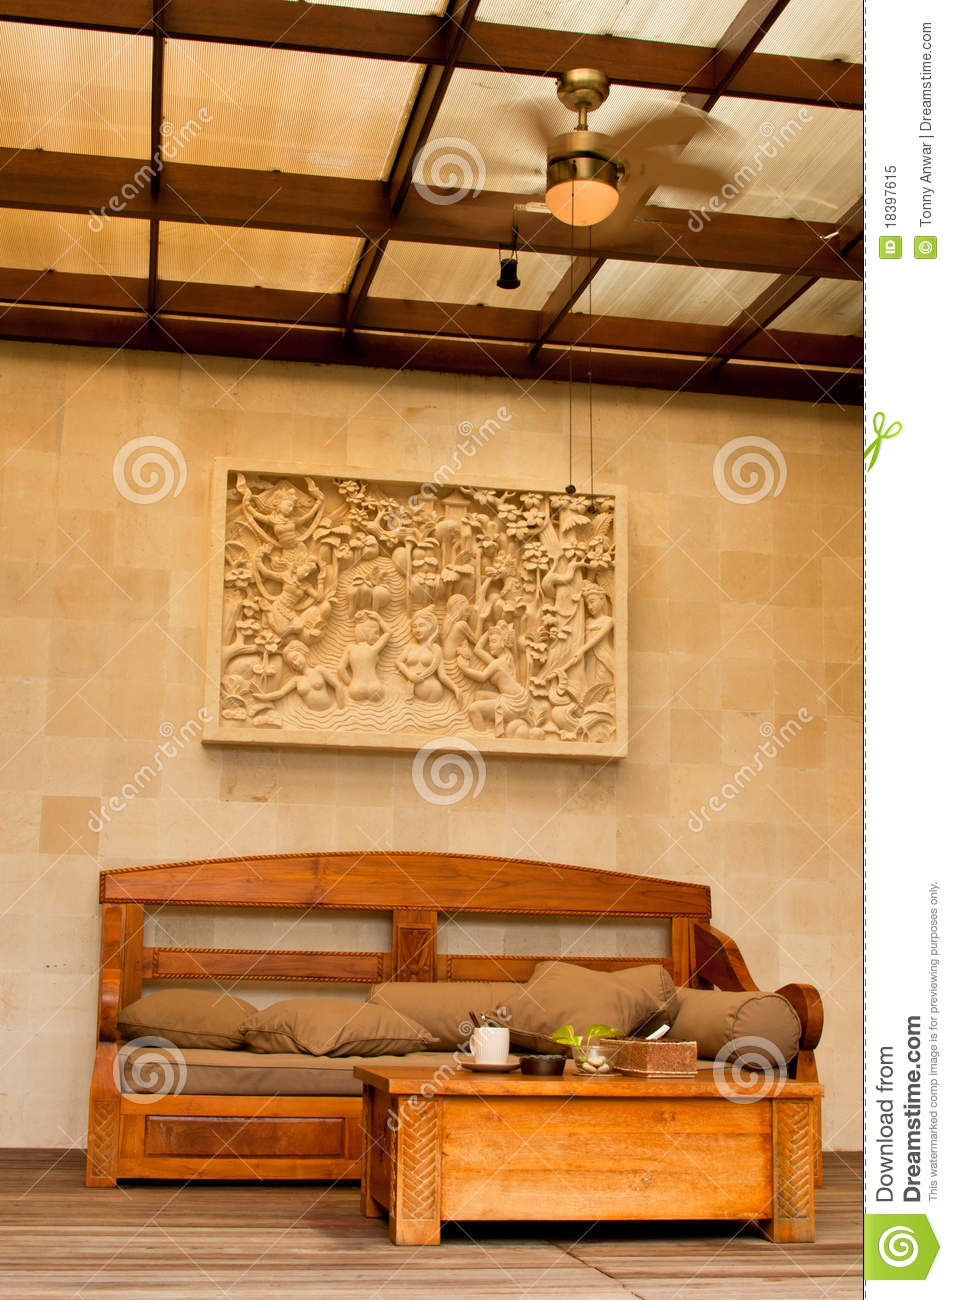 Tropical Bali Themed Living Room Stock Image  Image 18397615